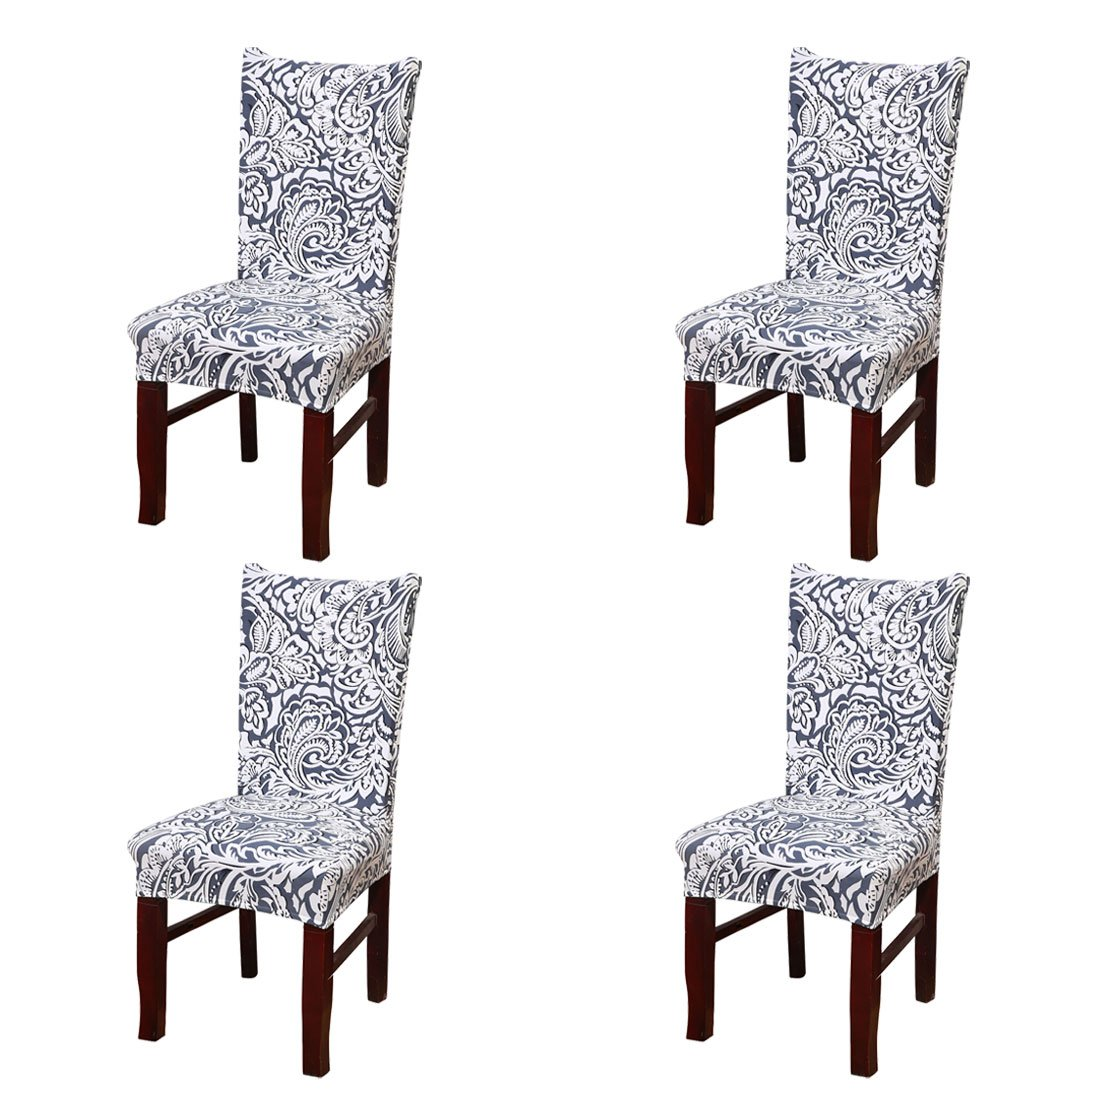 Soulfeel 4 x Soft Spandex Fit Stretch Short Dining Room Chair Covers with Printed Pattern, Banquet Chair Seat Protector Slipcover for Home Party Hotel Wedding Ceremony (Style 1)